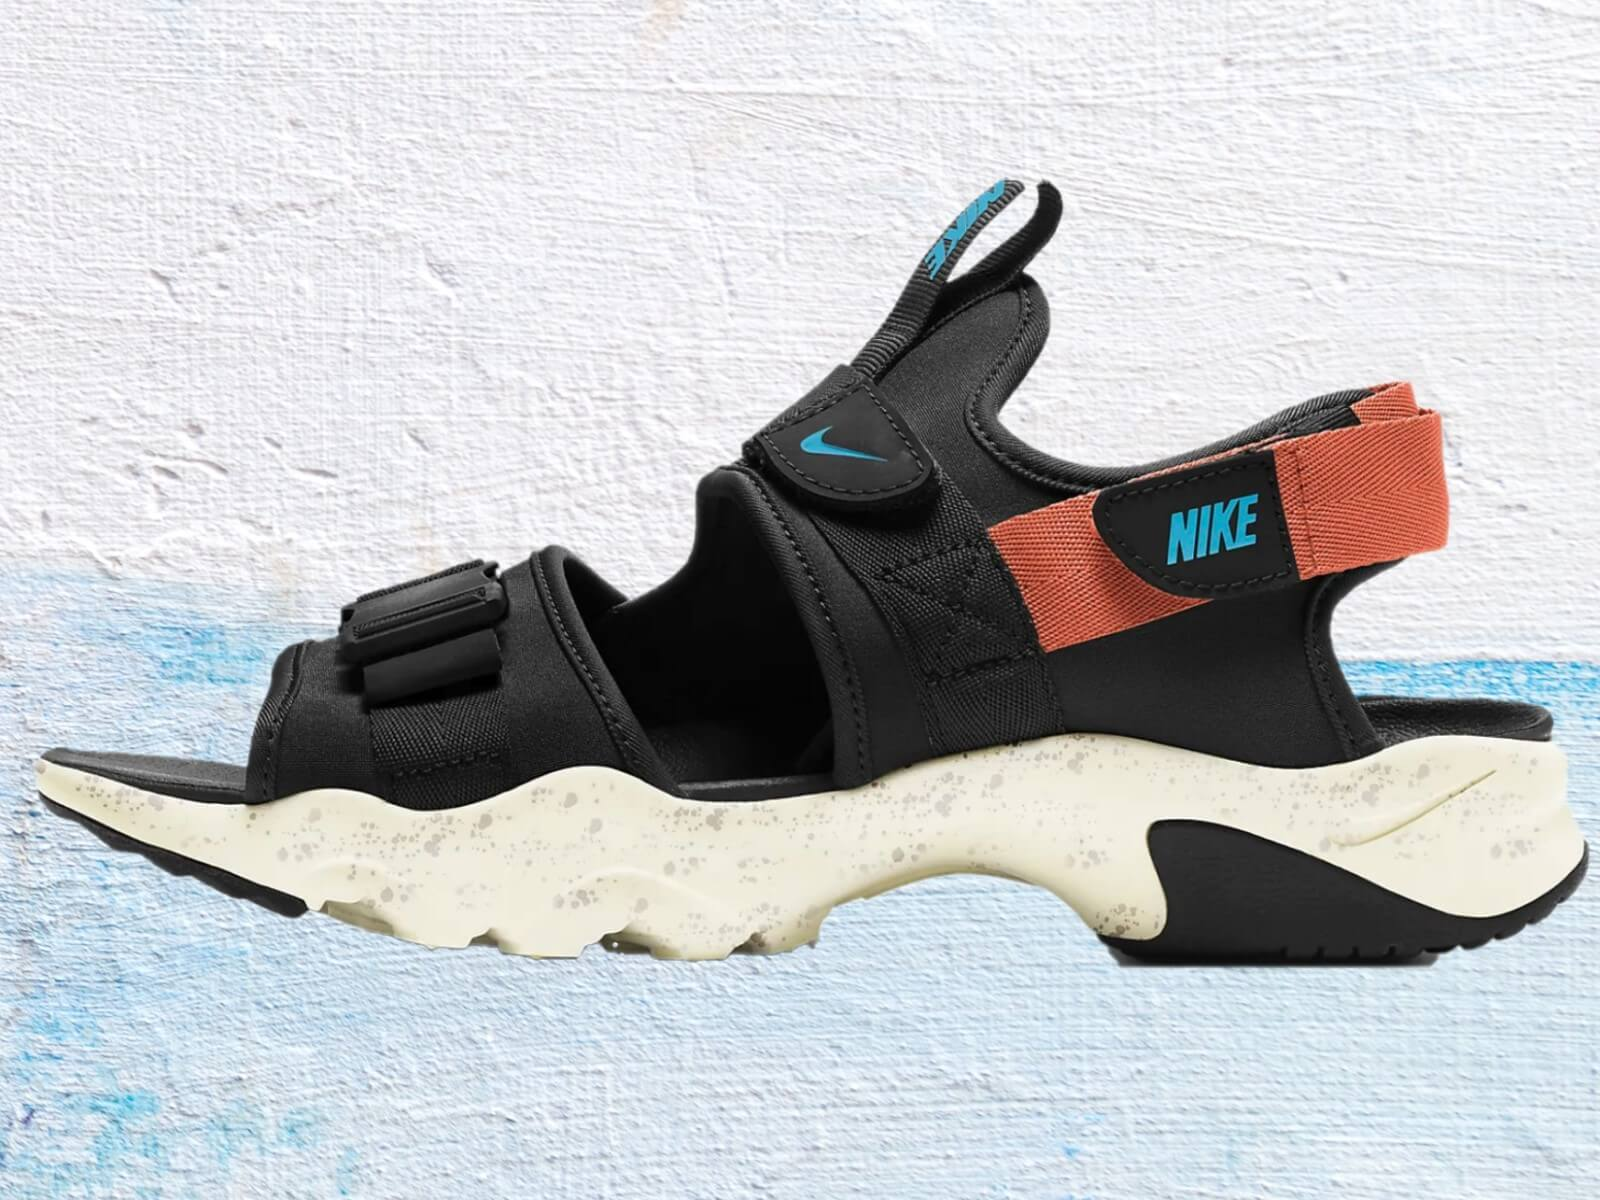 Side view of the Nike canyon men's sandal